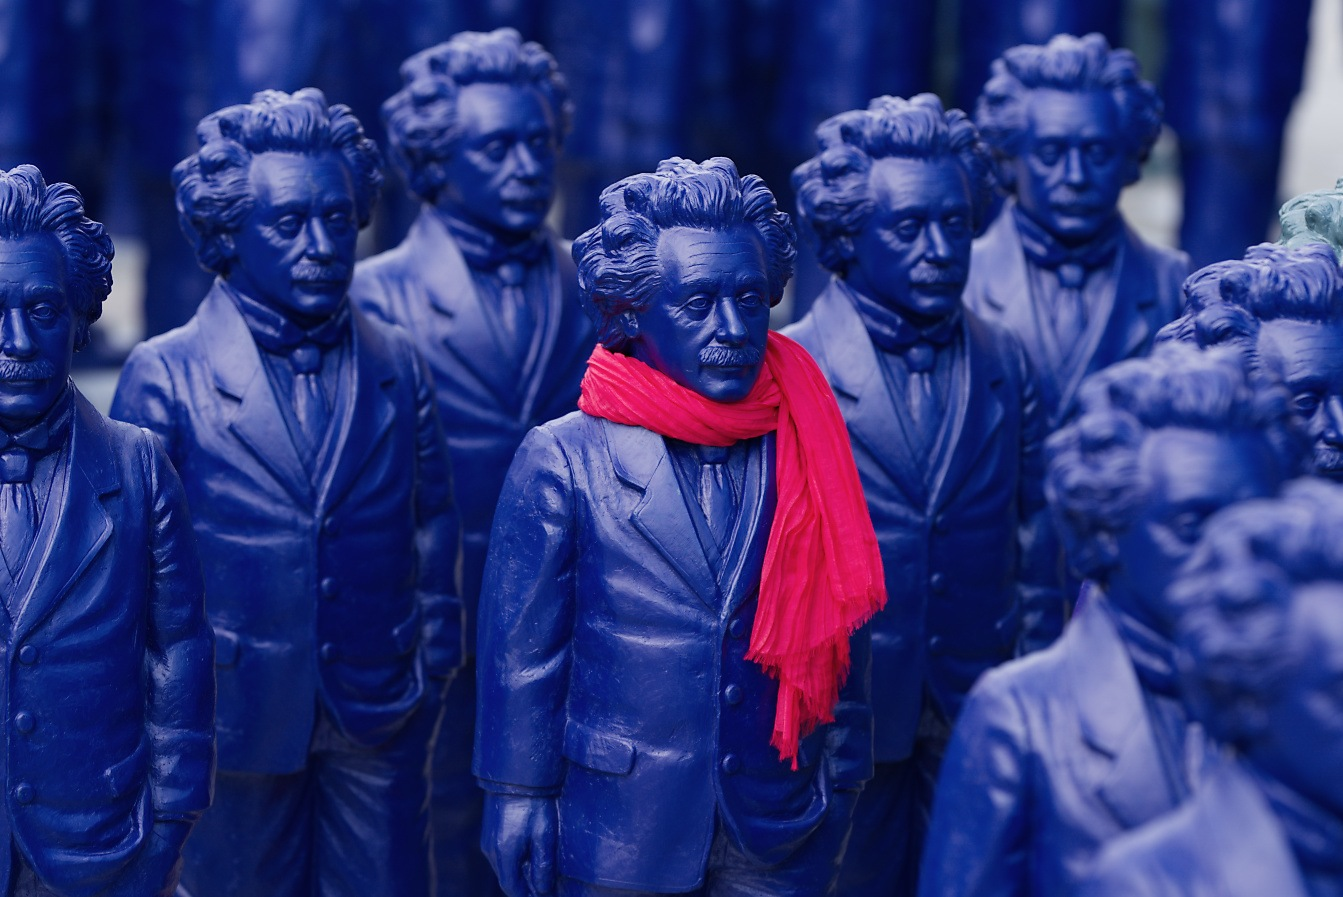 DSC04551-Einstein-with-red-scarf-25p